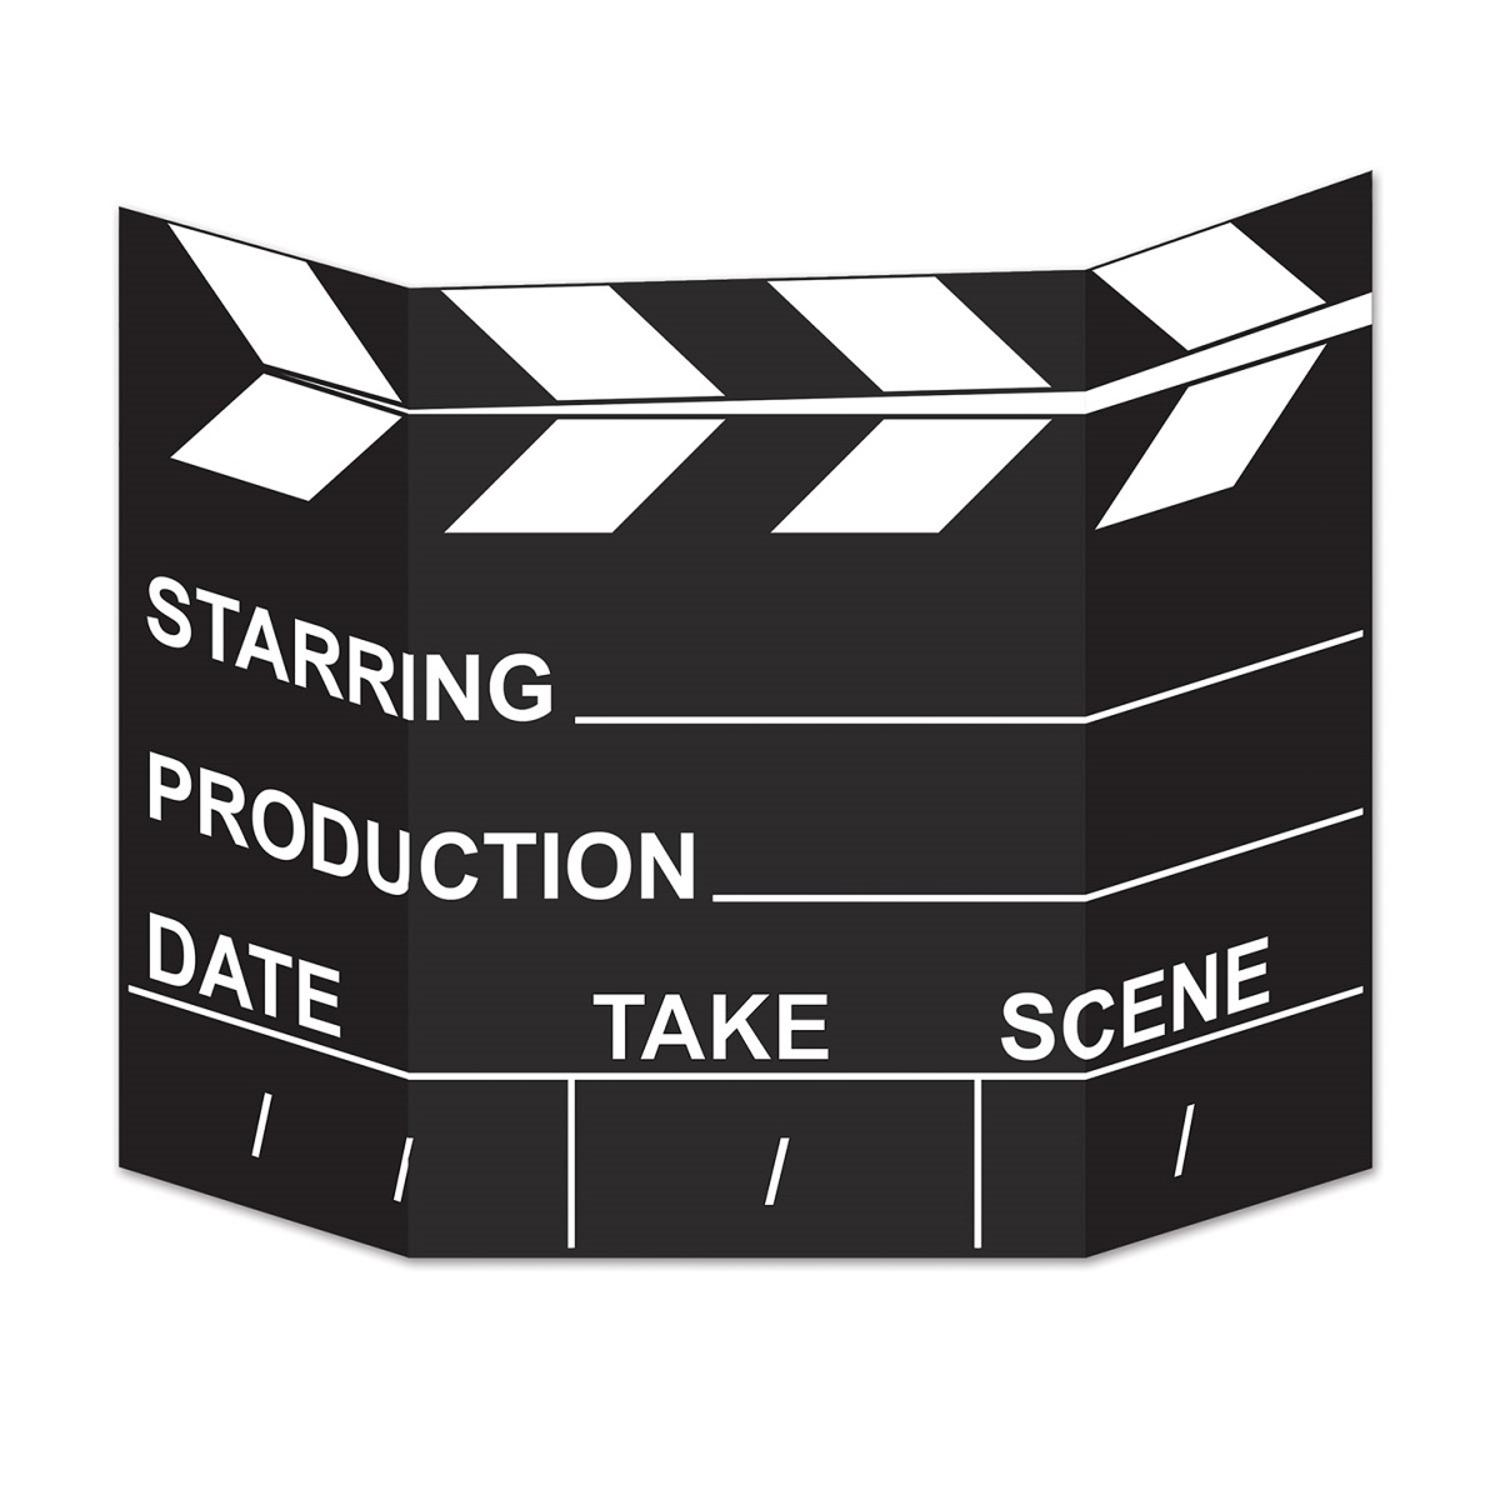 "Pack of 6 Awards Night Movie Set Clapboard Photo Props 27"" x 34.5"""